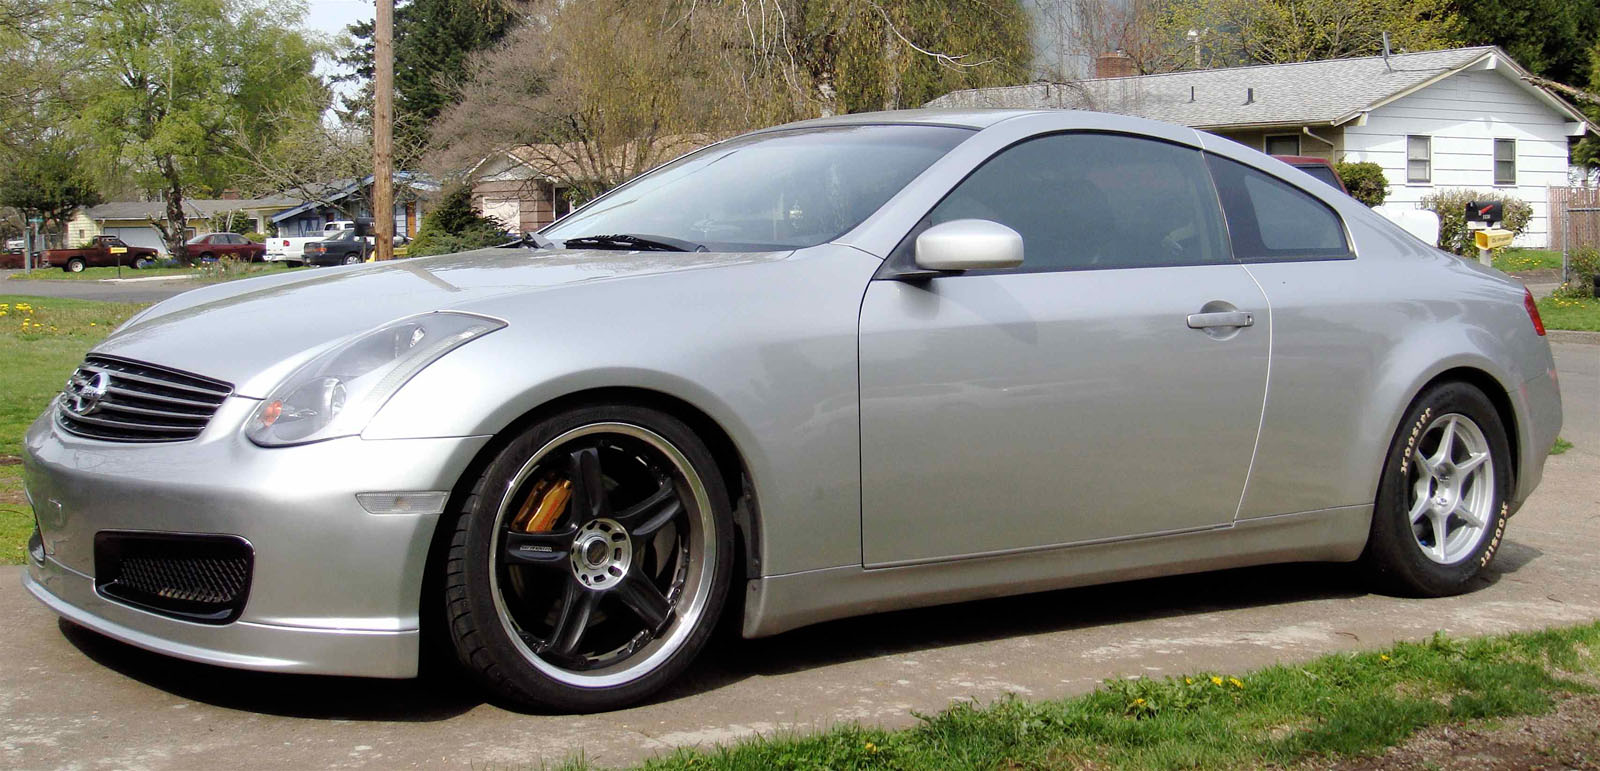 2004 Infiniti G35 Coupe MT